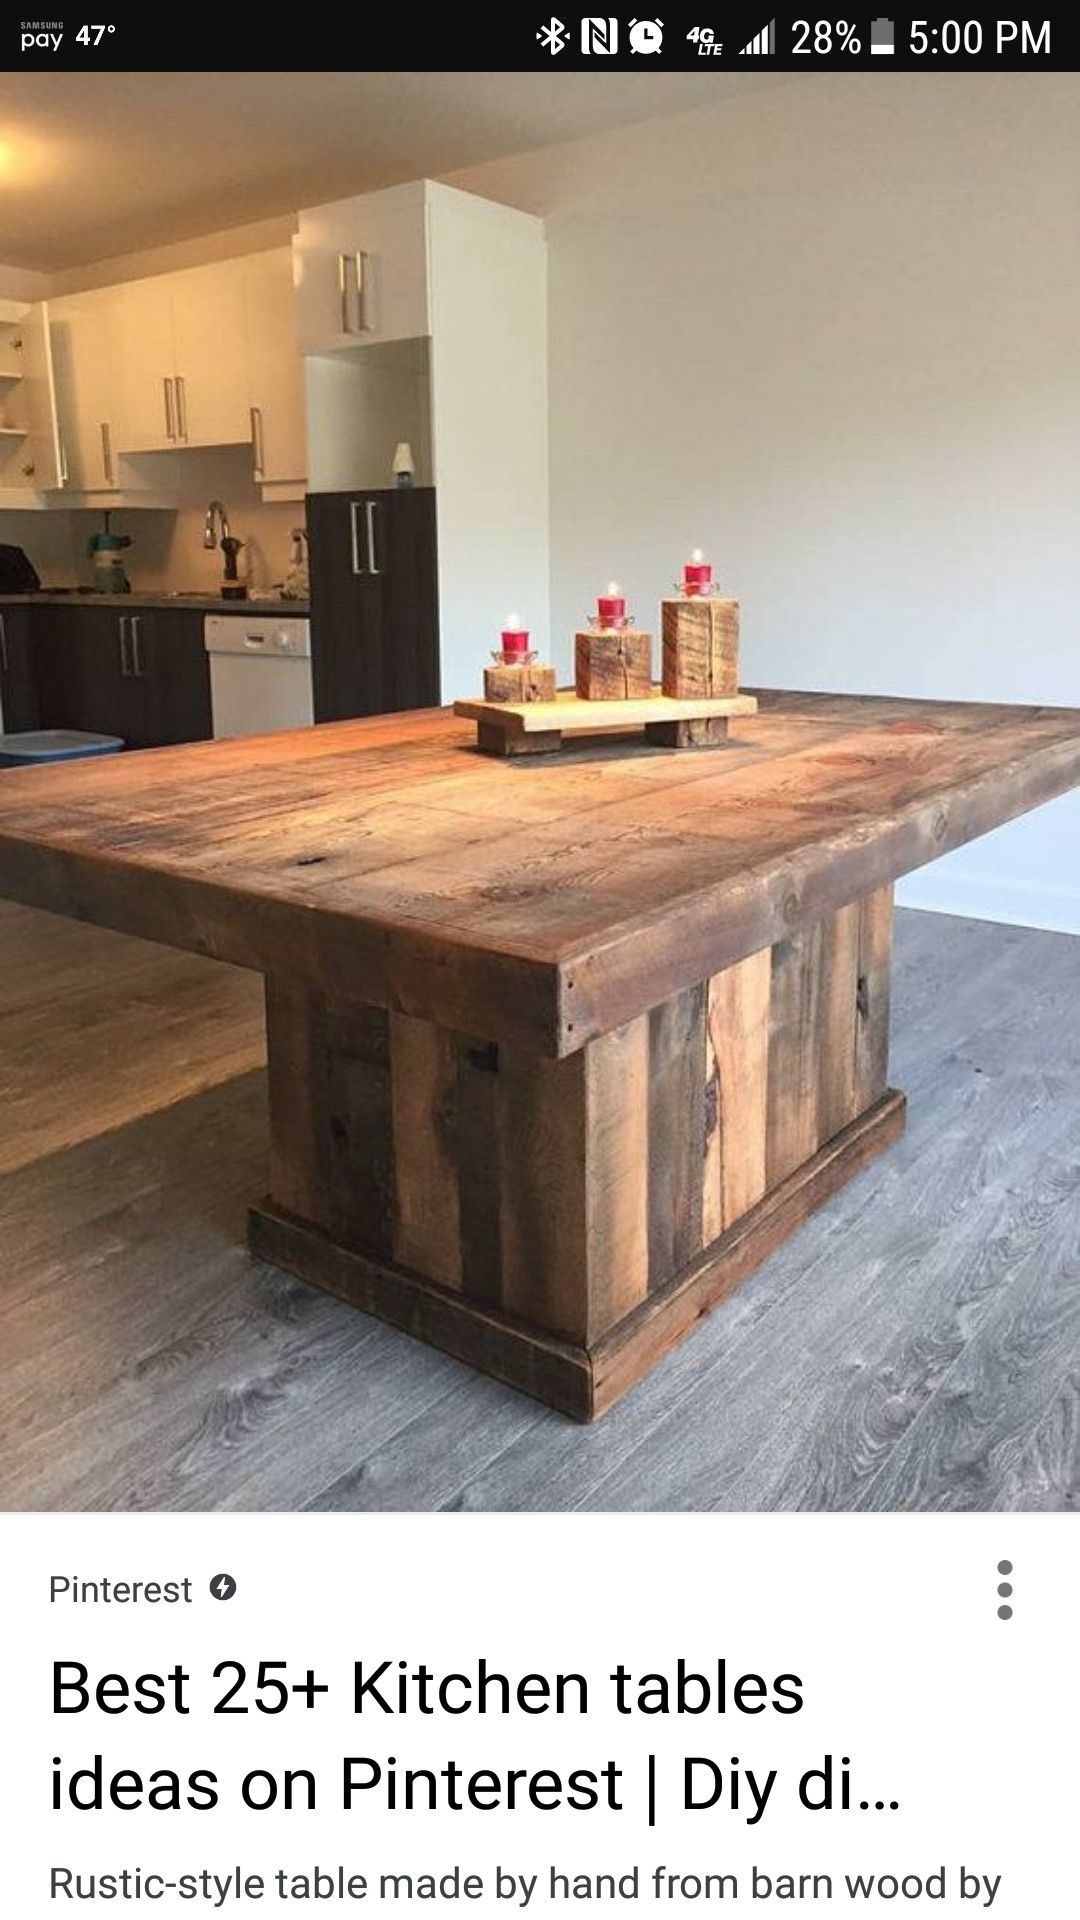 Pin By Otis Campbell On Projects To Try Rustic Furniture Furniture Home Decor